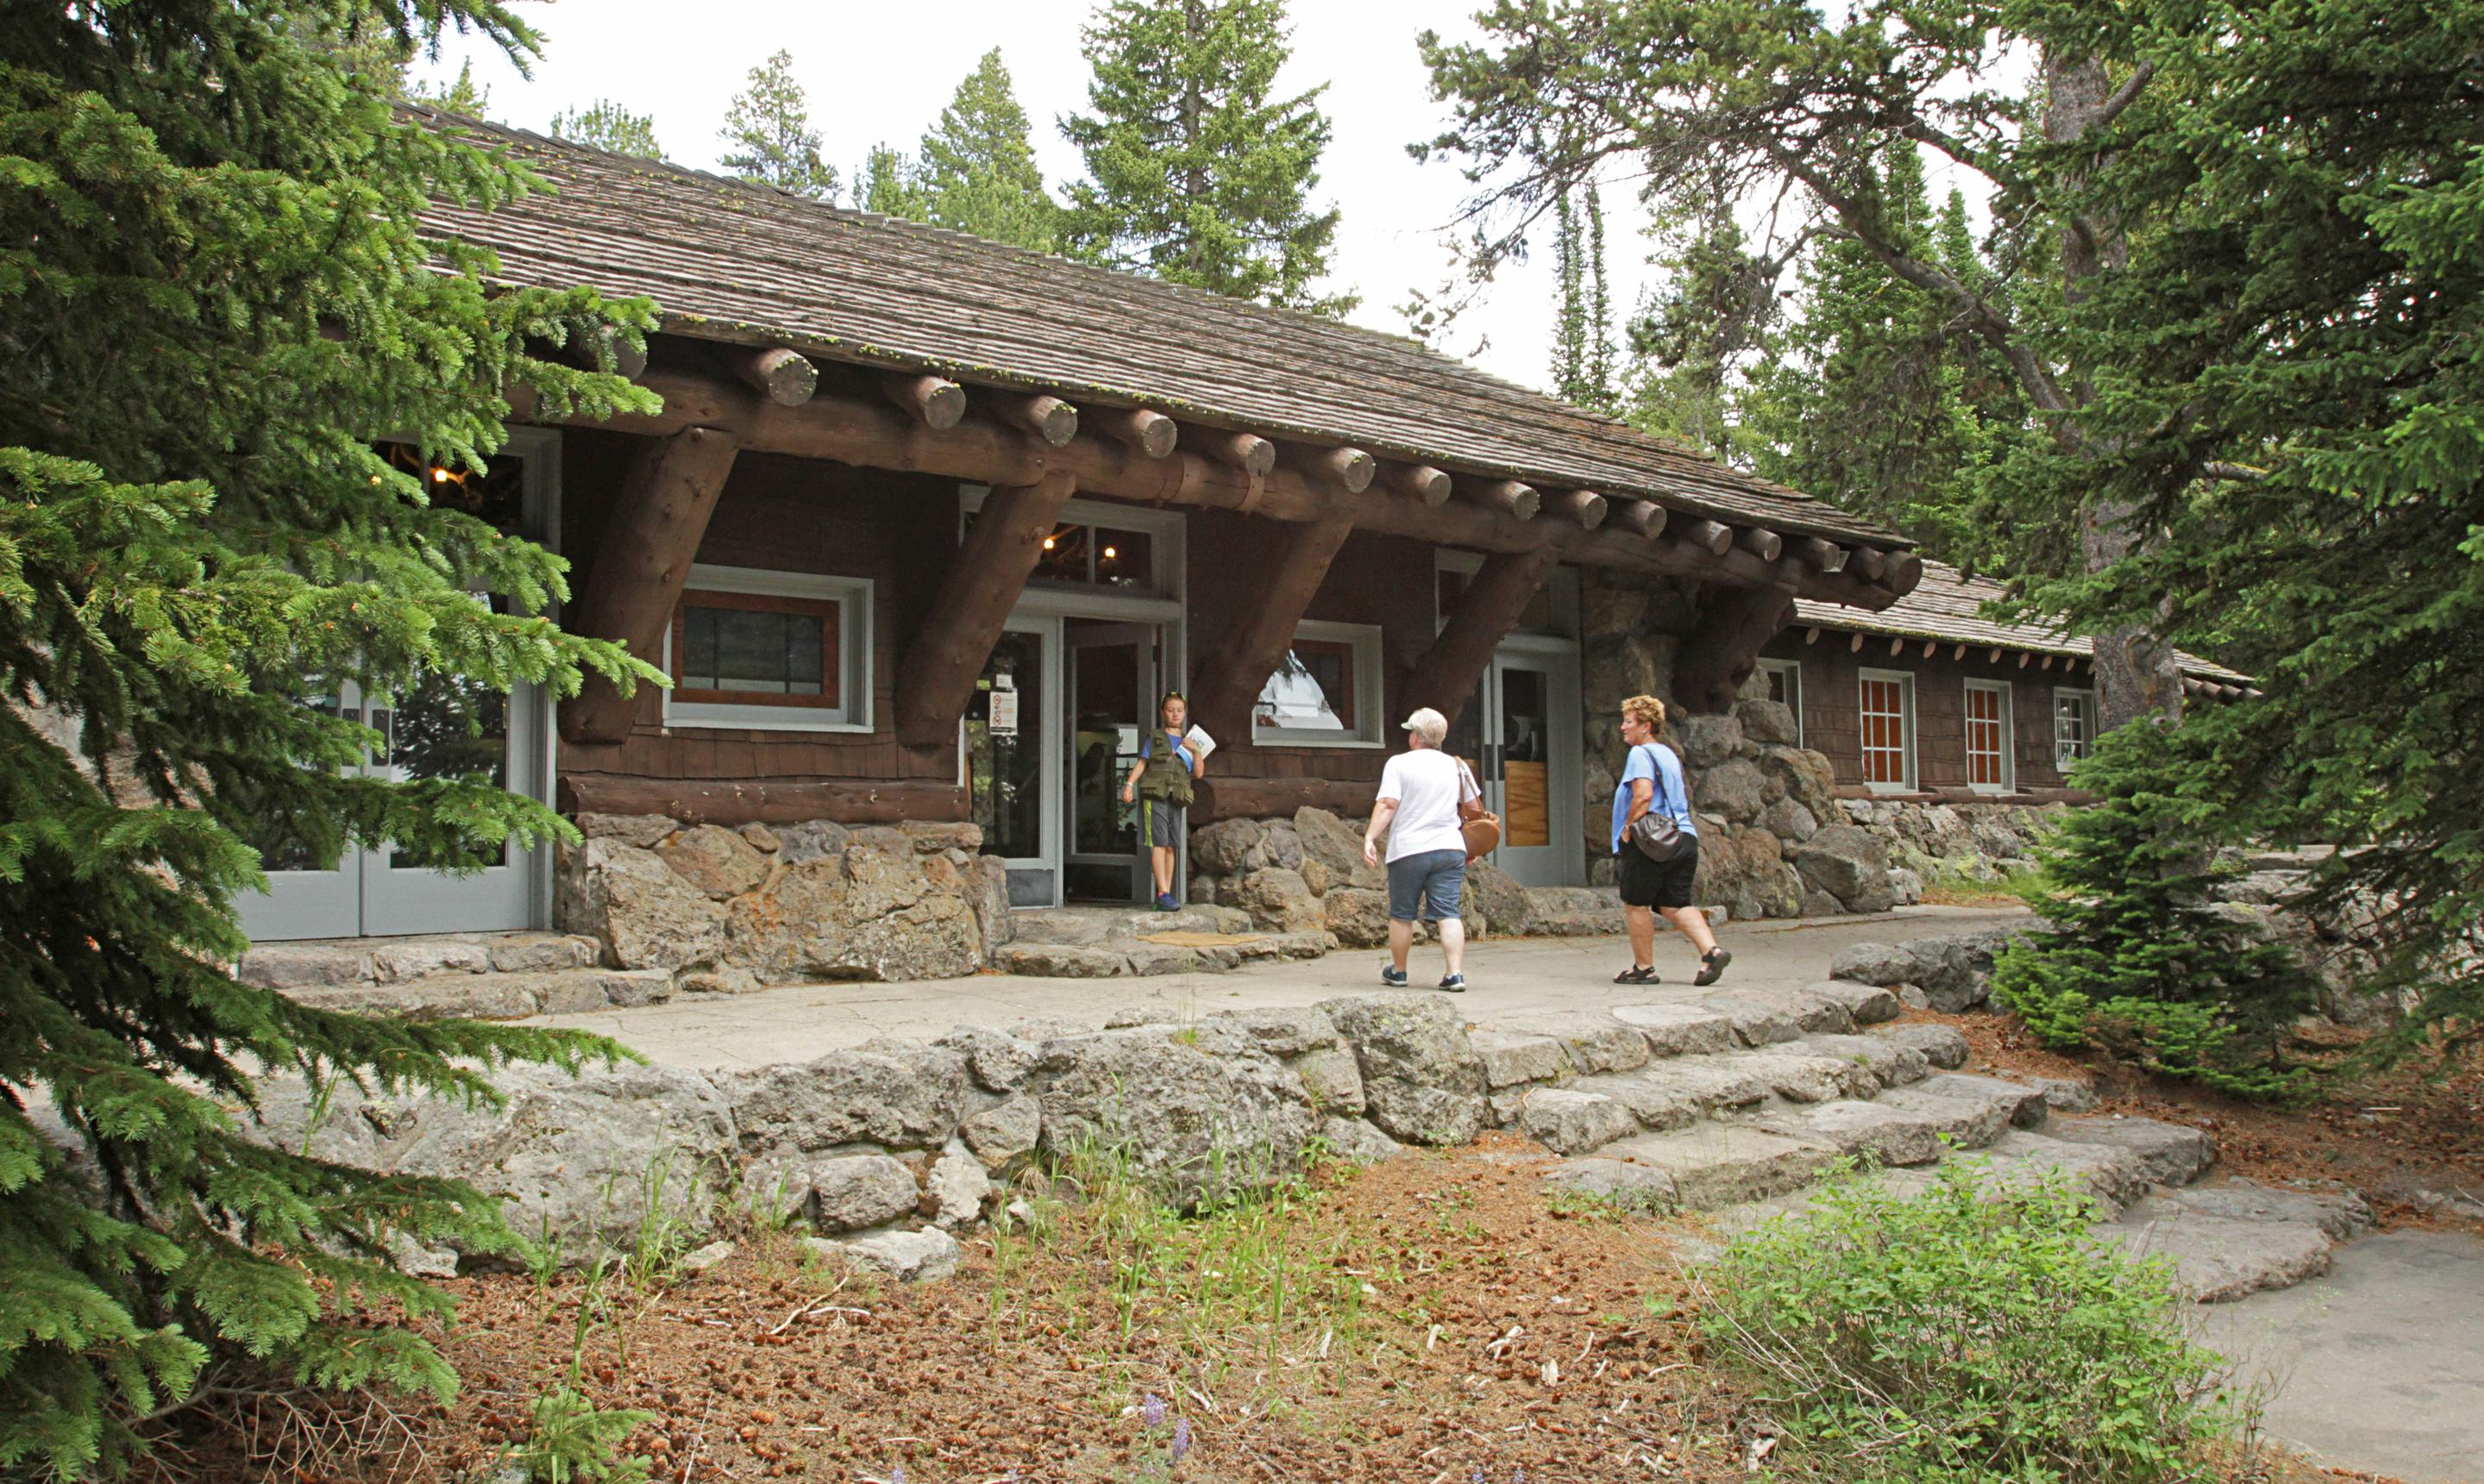 Fishing Bridge Trailside MuseumThe stone-and-log architecture of Fishing Bridge Trailside Museum became a prototype for park buildings all around the country